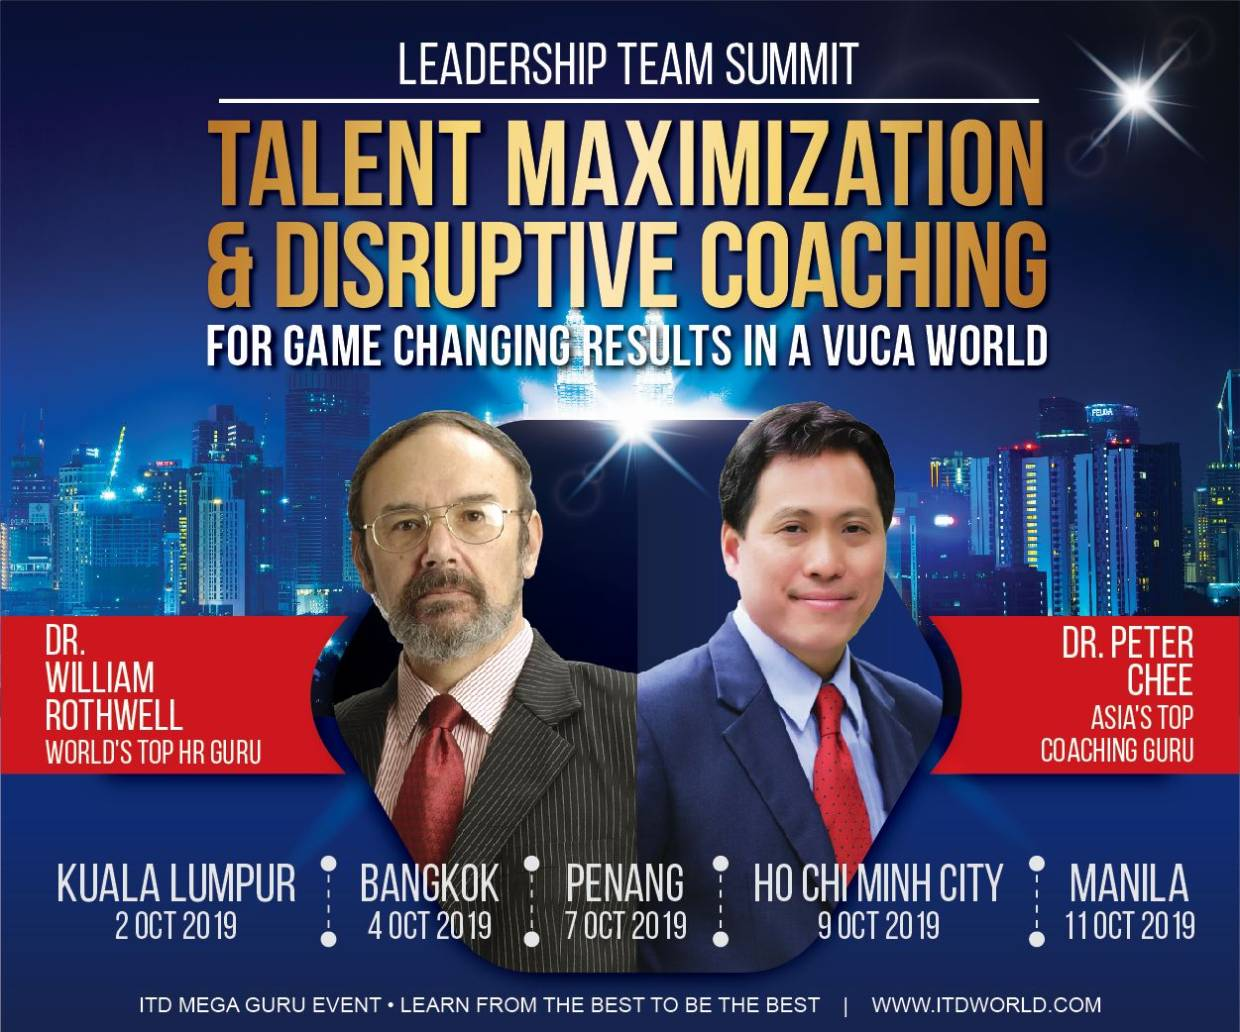 Don't miss out on this Leadership Team Summit happening in Kuala Lumpur on Oct 2 and in Penang on Oct 7.